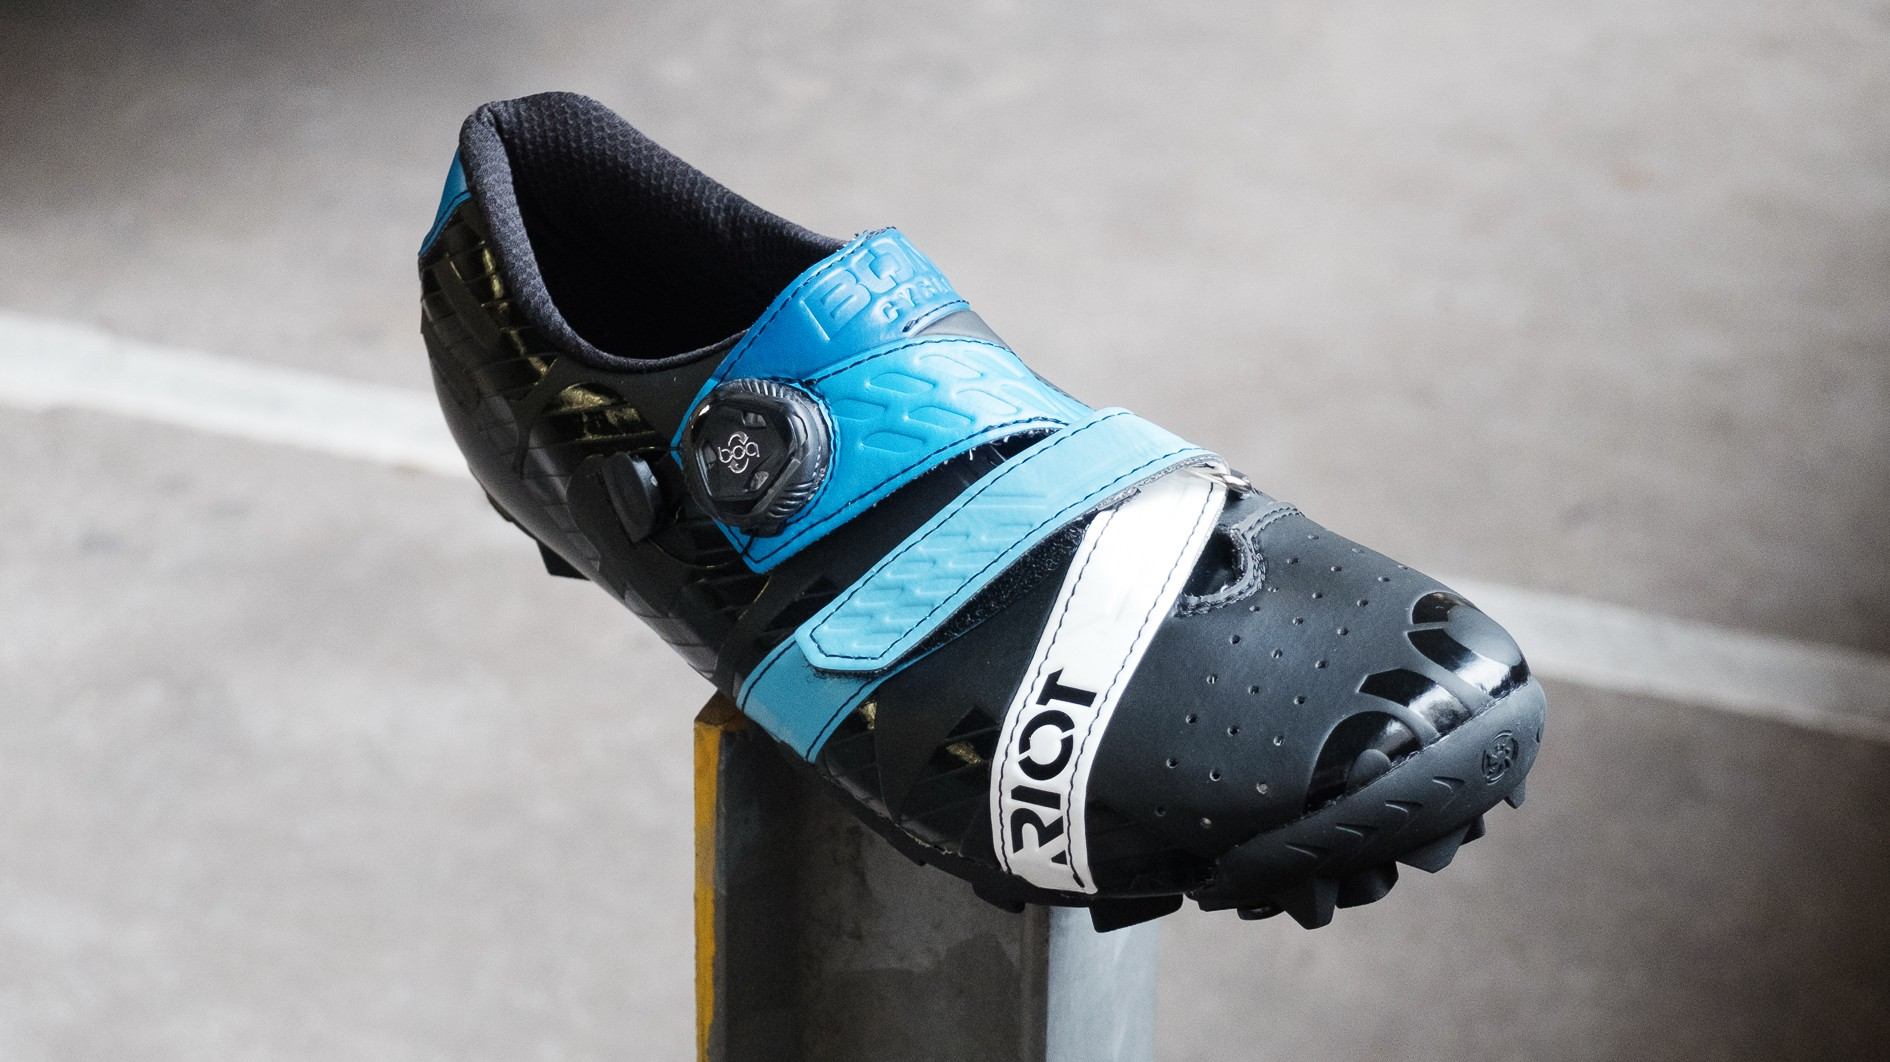 Bont's Riot MTB shoes are one of the cheapest heat-mouldable options out there